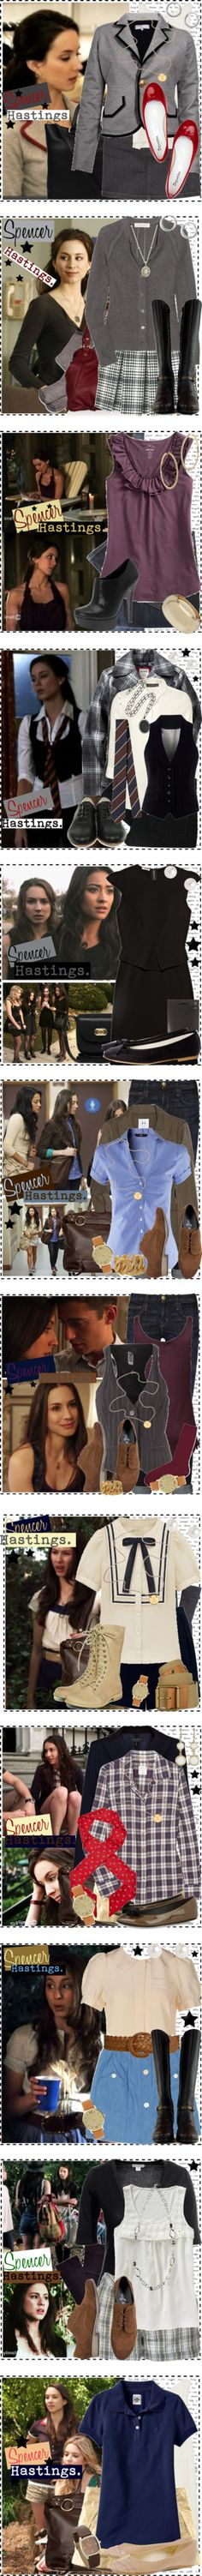 Spencer Hastings style Pretty Little Liars, Silver-Screen-Style on Polyvore